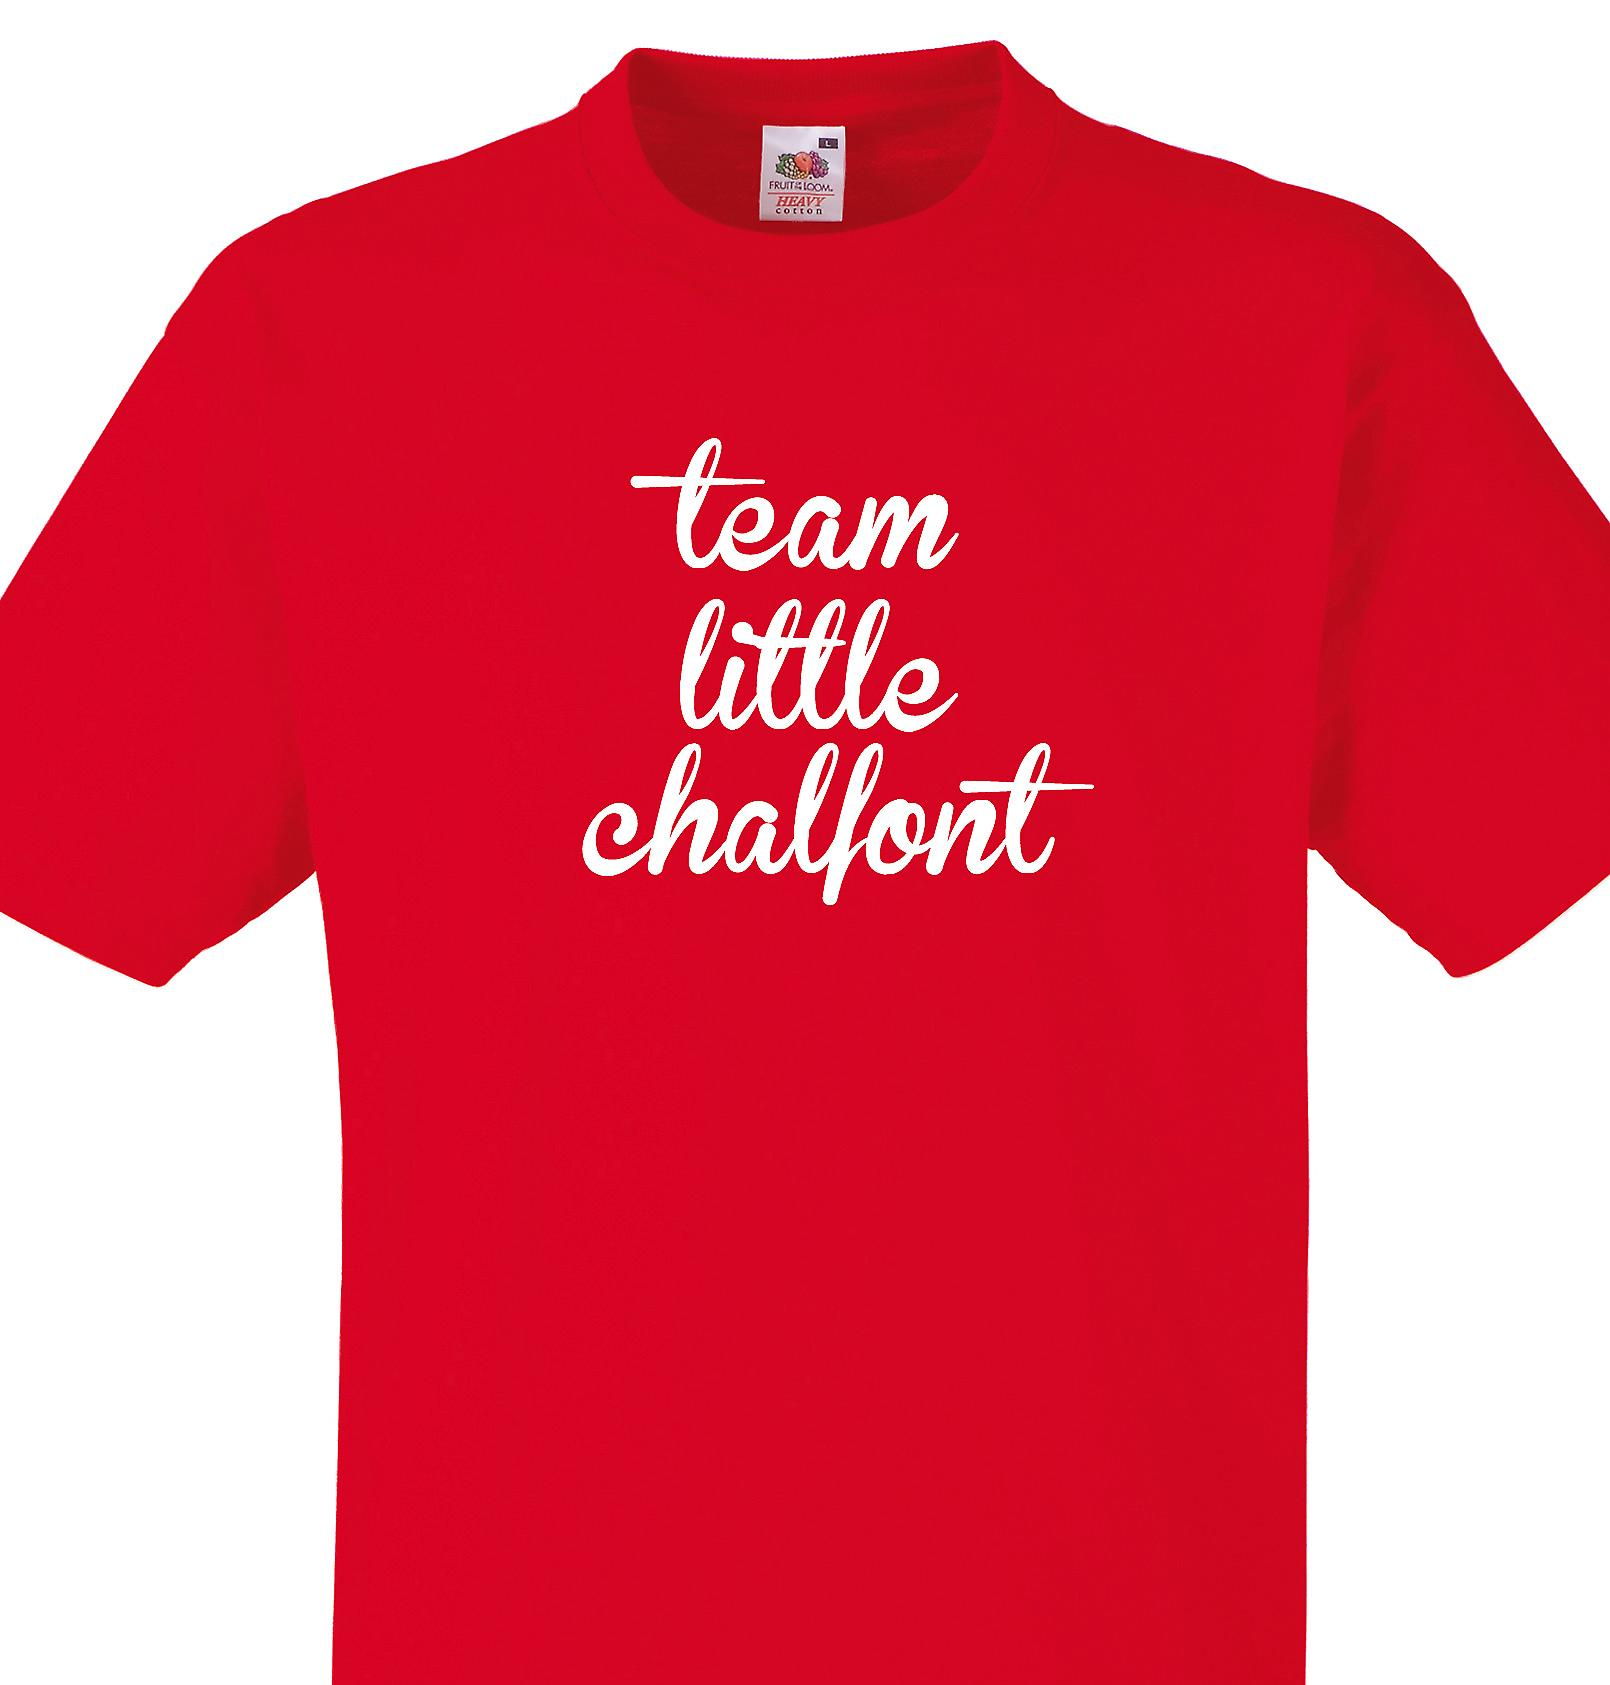 Team Little chalfont Red T shirt